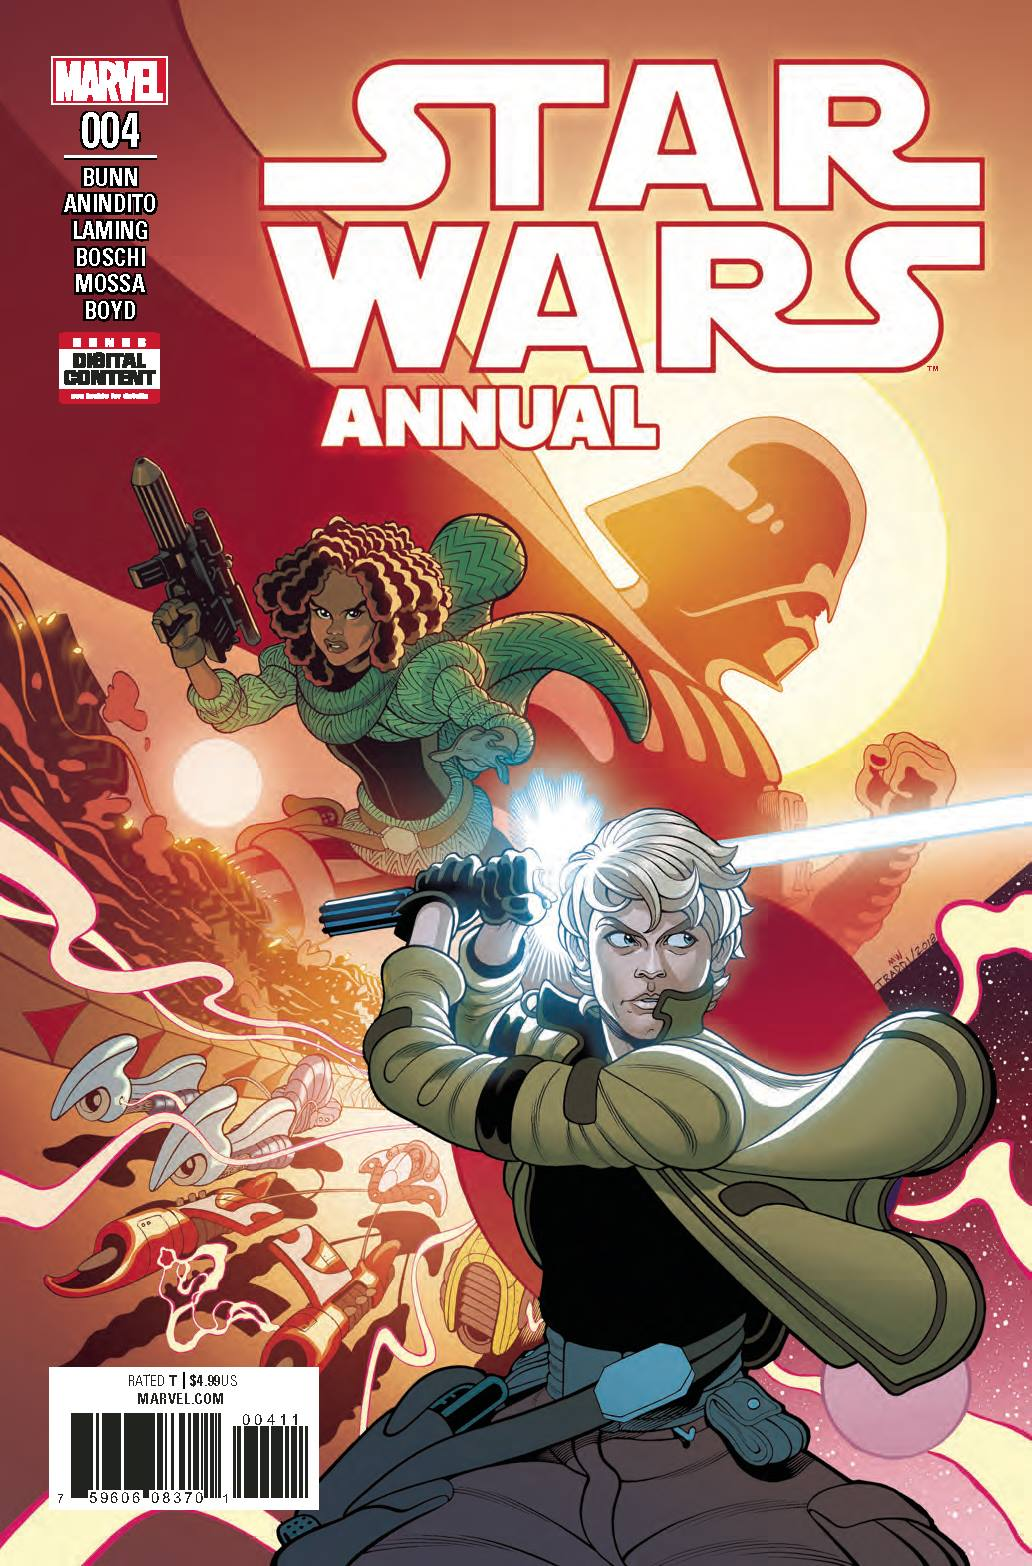 Star Wars Annual 004